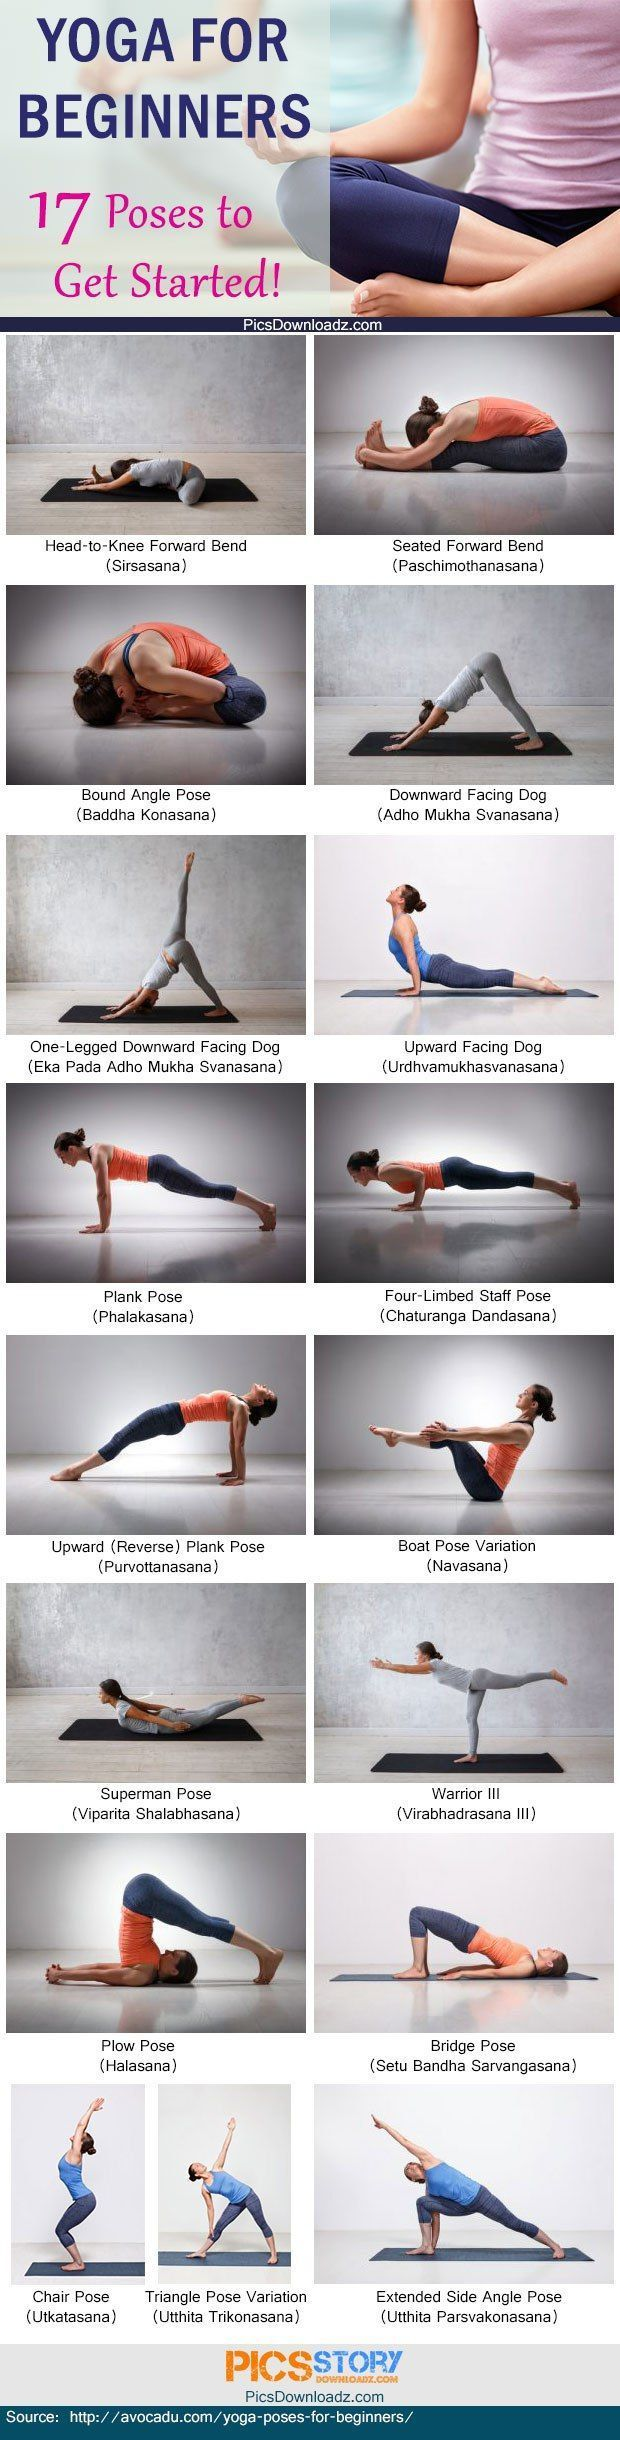 Yoga for beginners: 17 yoga poses to get started. Quickstart yoga poses for a he...